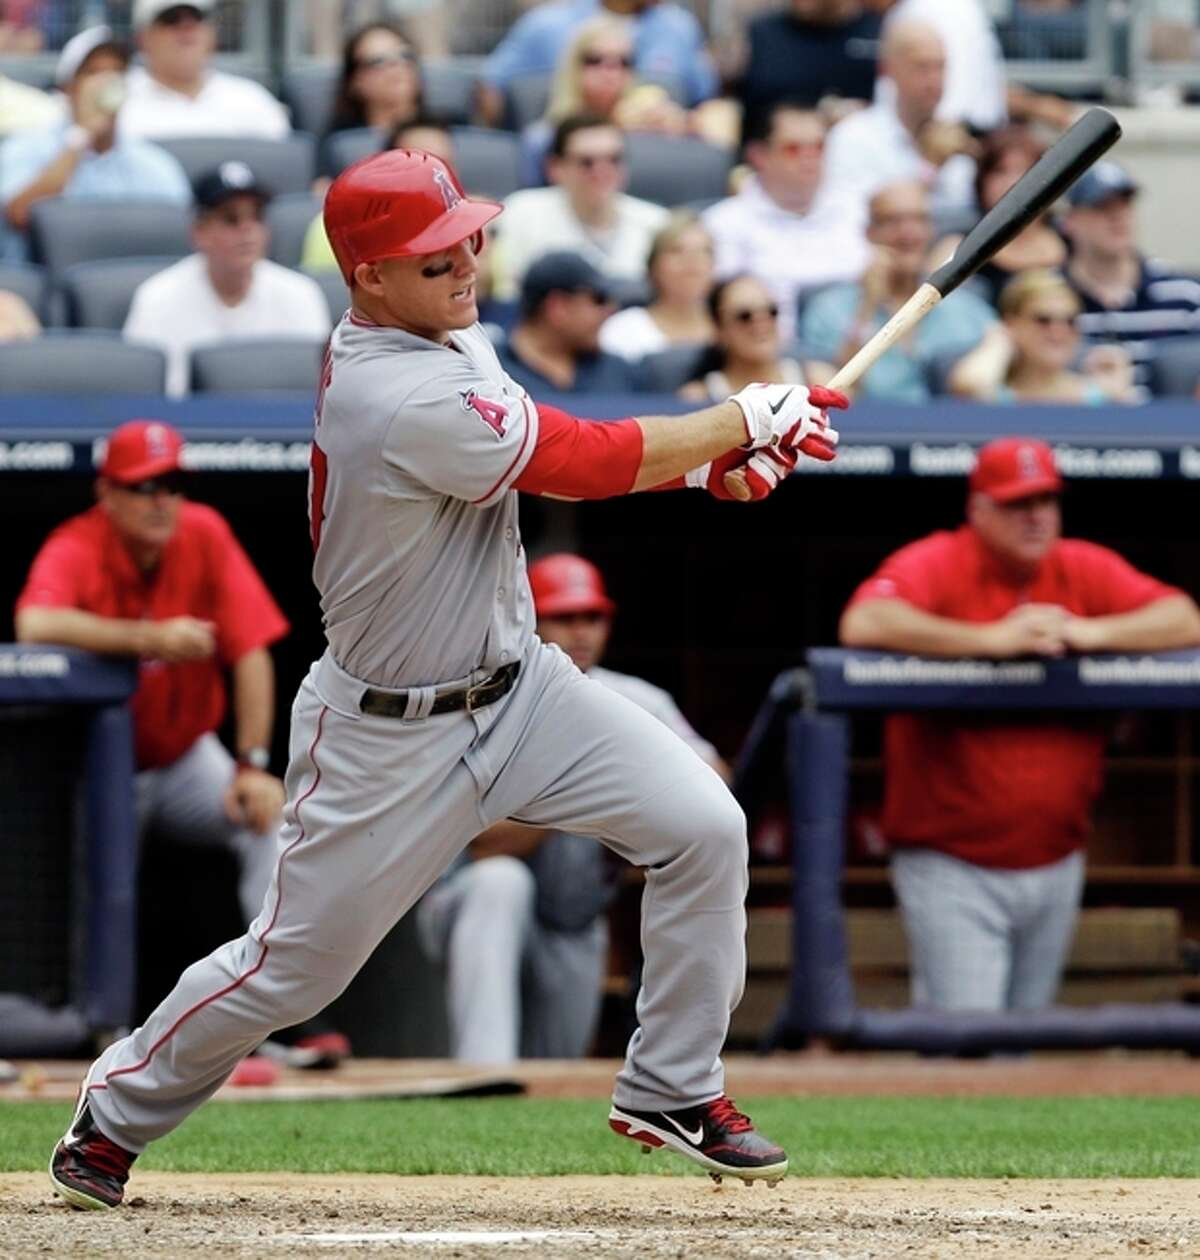 Los Angeles Angels' Mike Trout hits an eighth-inning, RBI double against the New York Yankees during a baseball game at Yankee Stadium in New York, Sunday, July 15, 2012. (AP Photo/Kathy Willens)